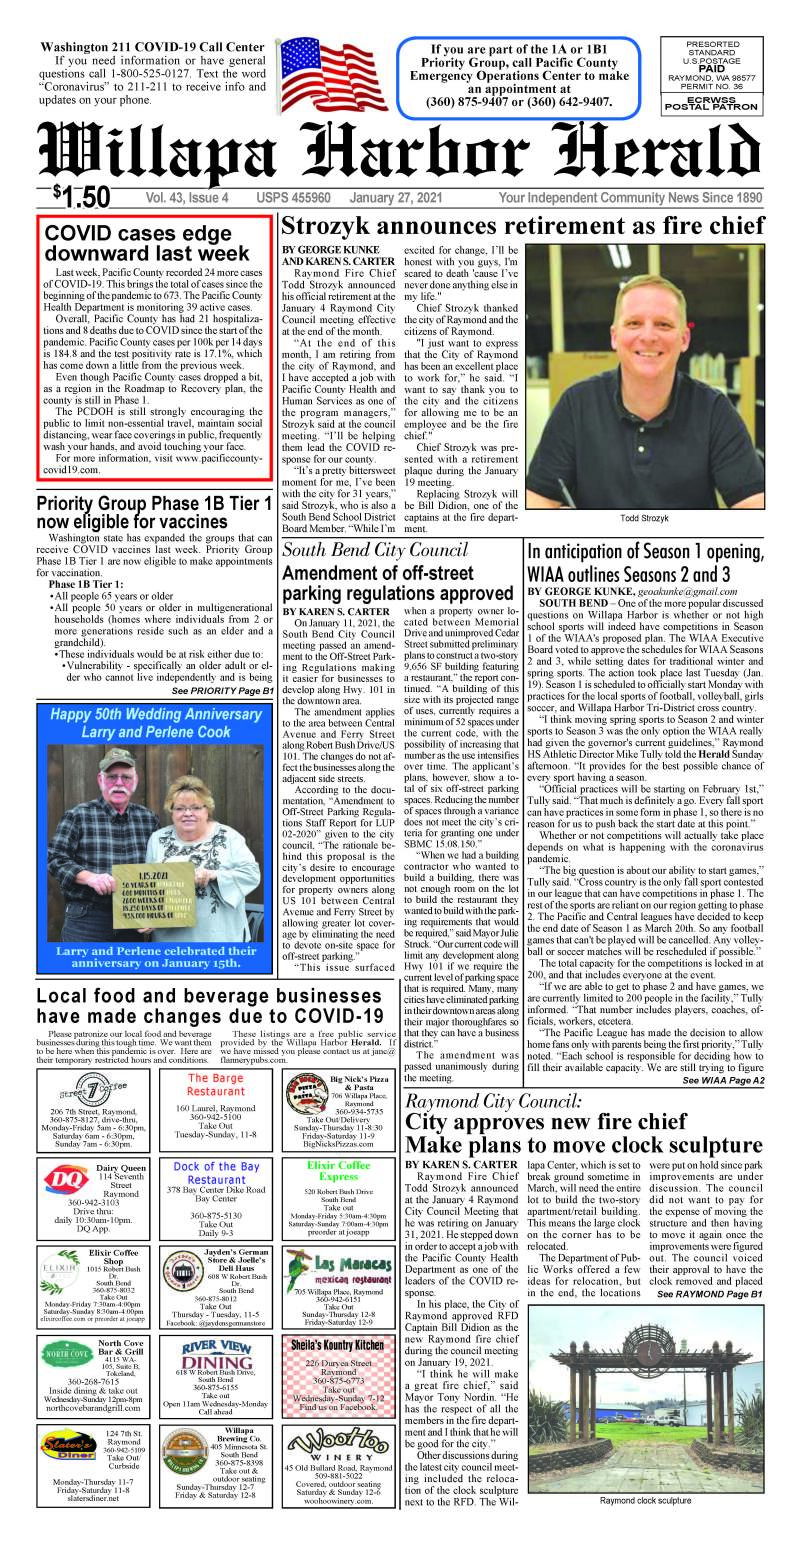 January 27, 2021 Willapa Harbor Herald and Pacific County Press